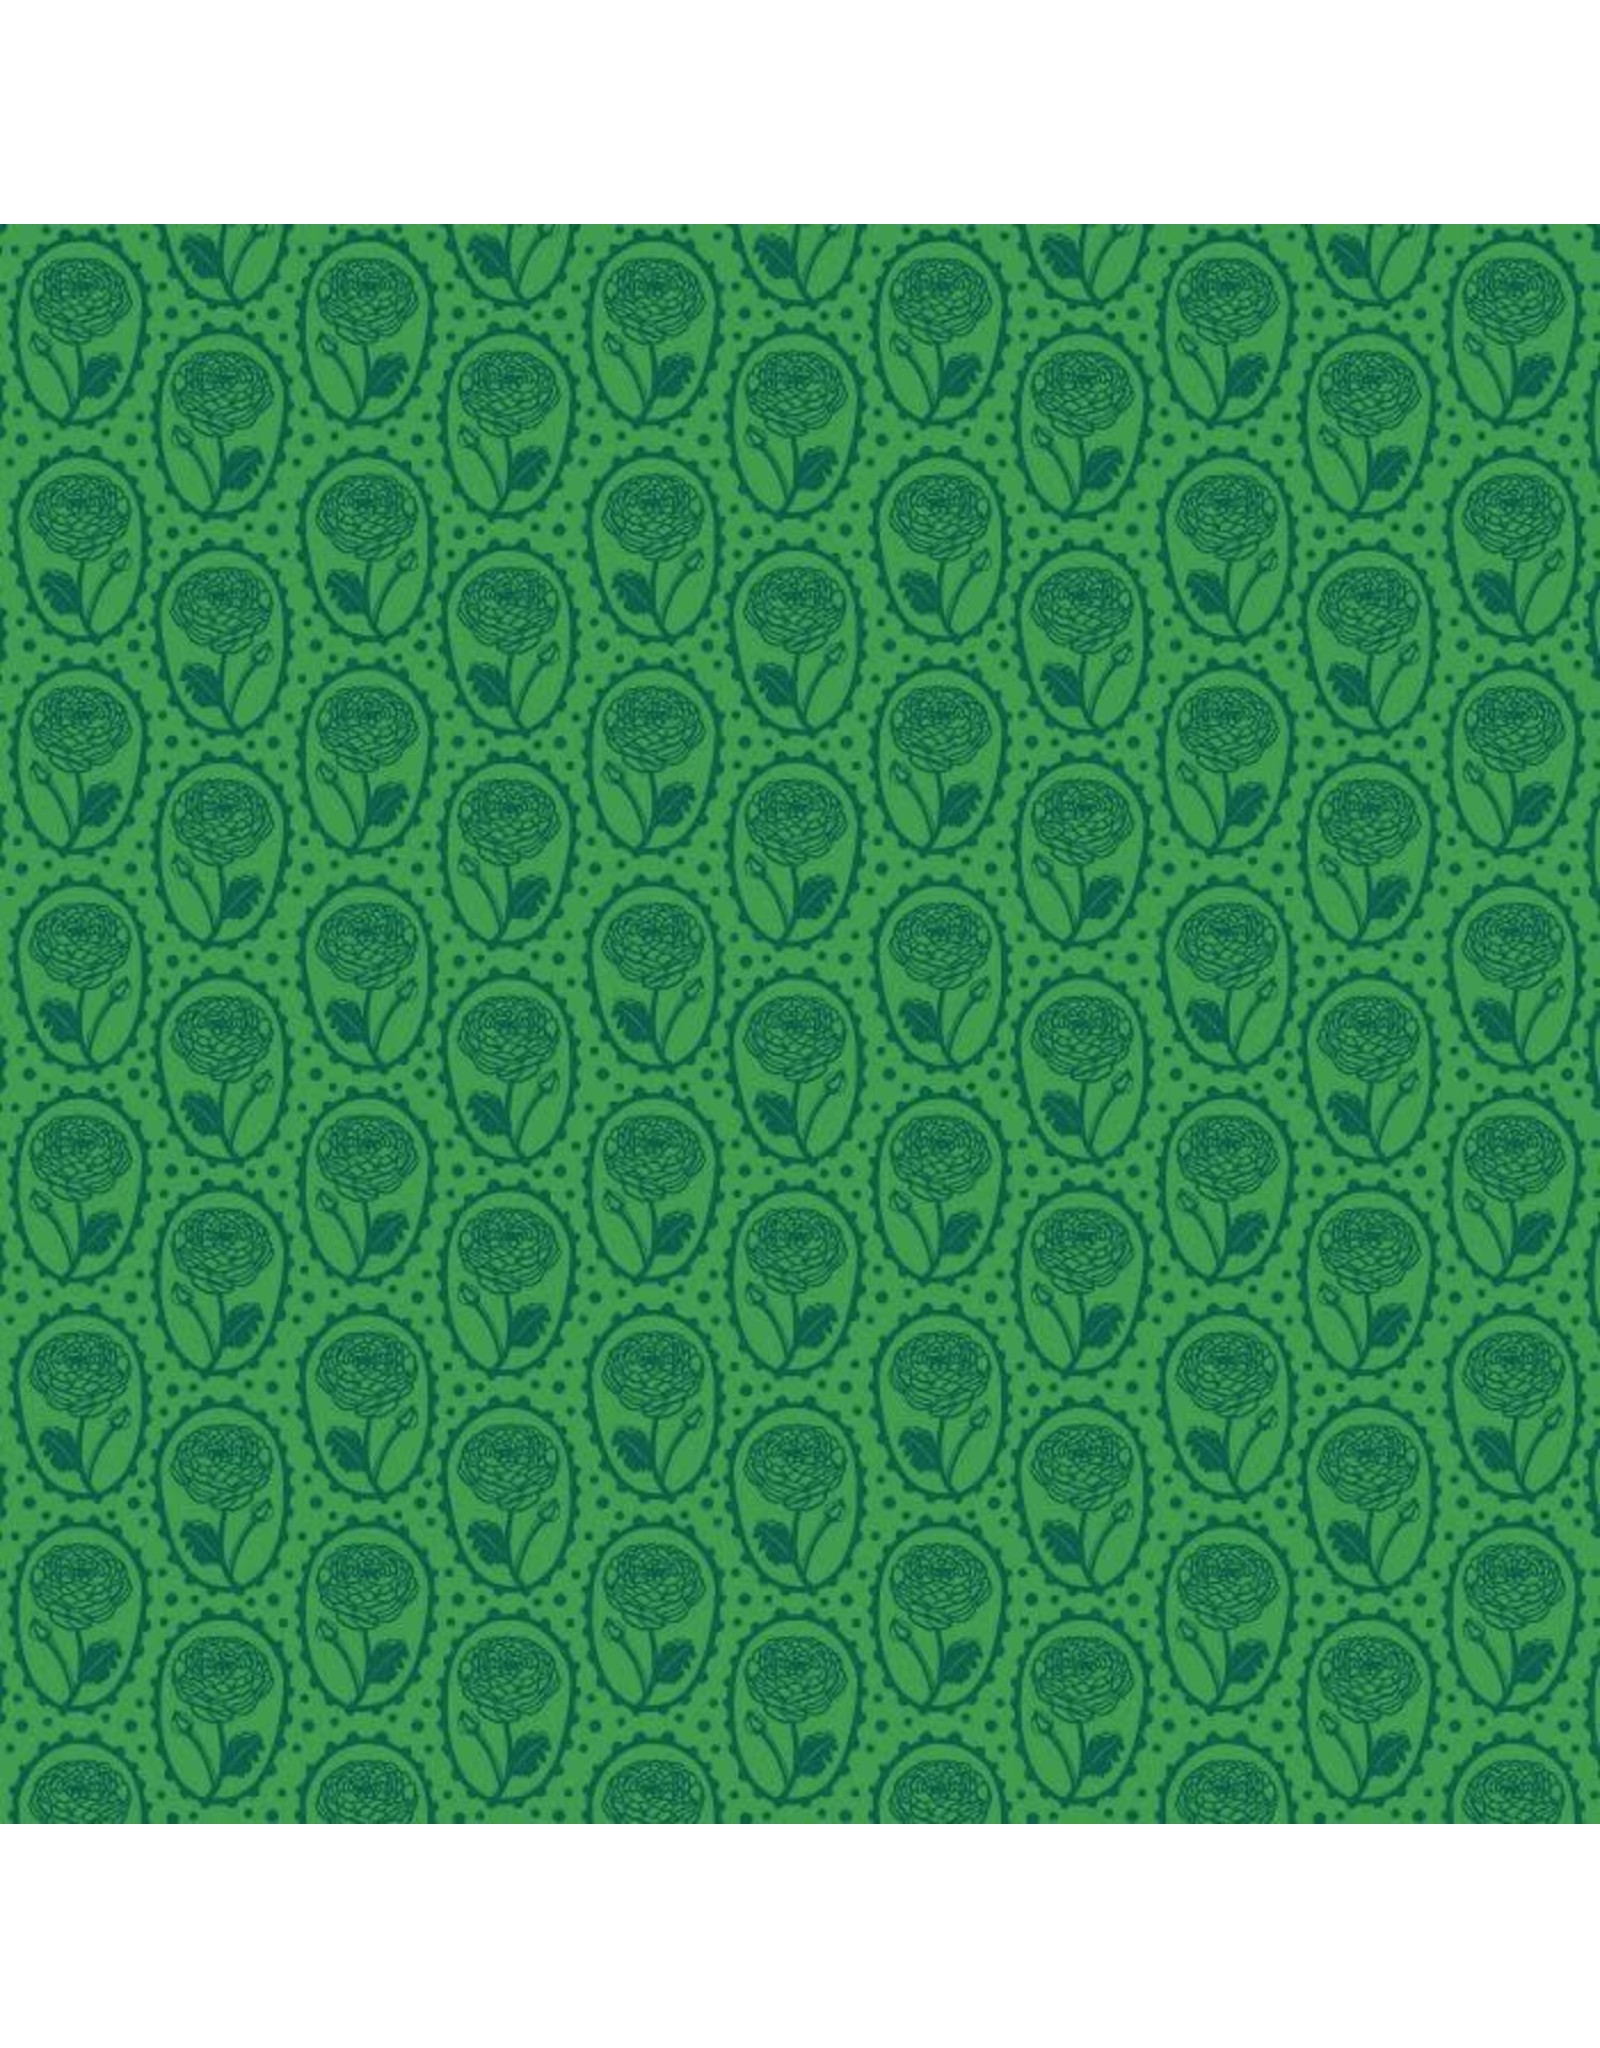 Anna Maria Horner ON SALE-Second Nature, Locket in Kelly, Fabric FULL-Yards